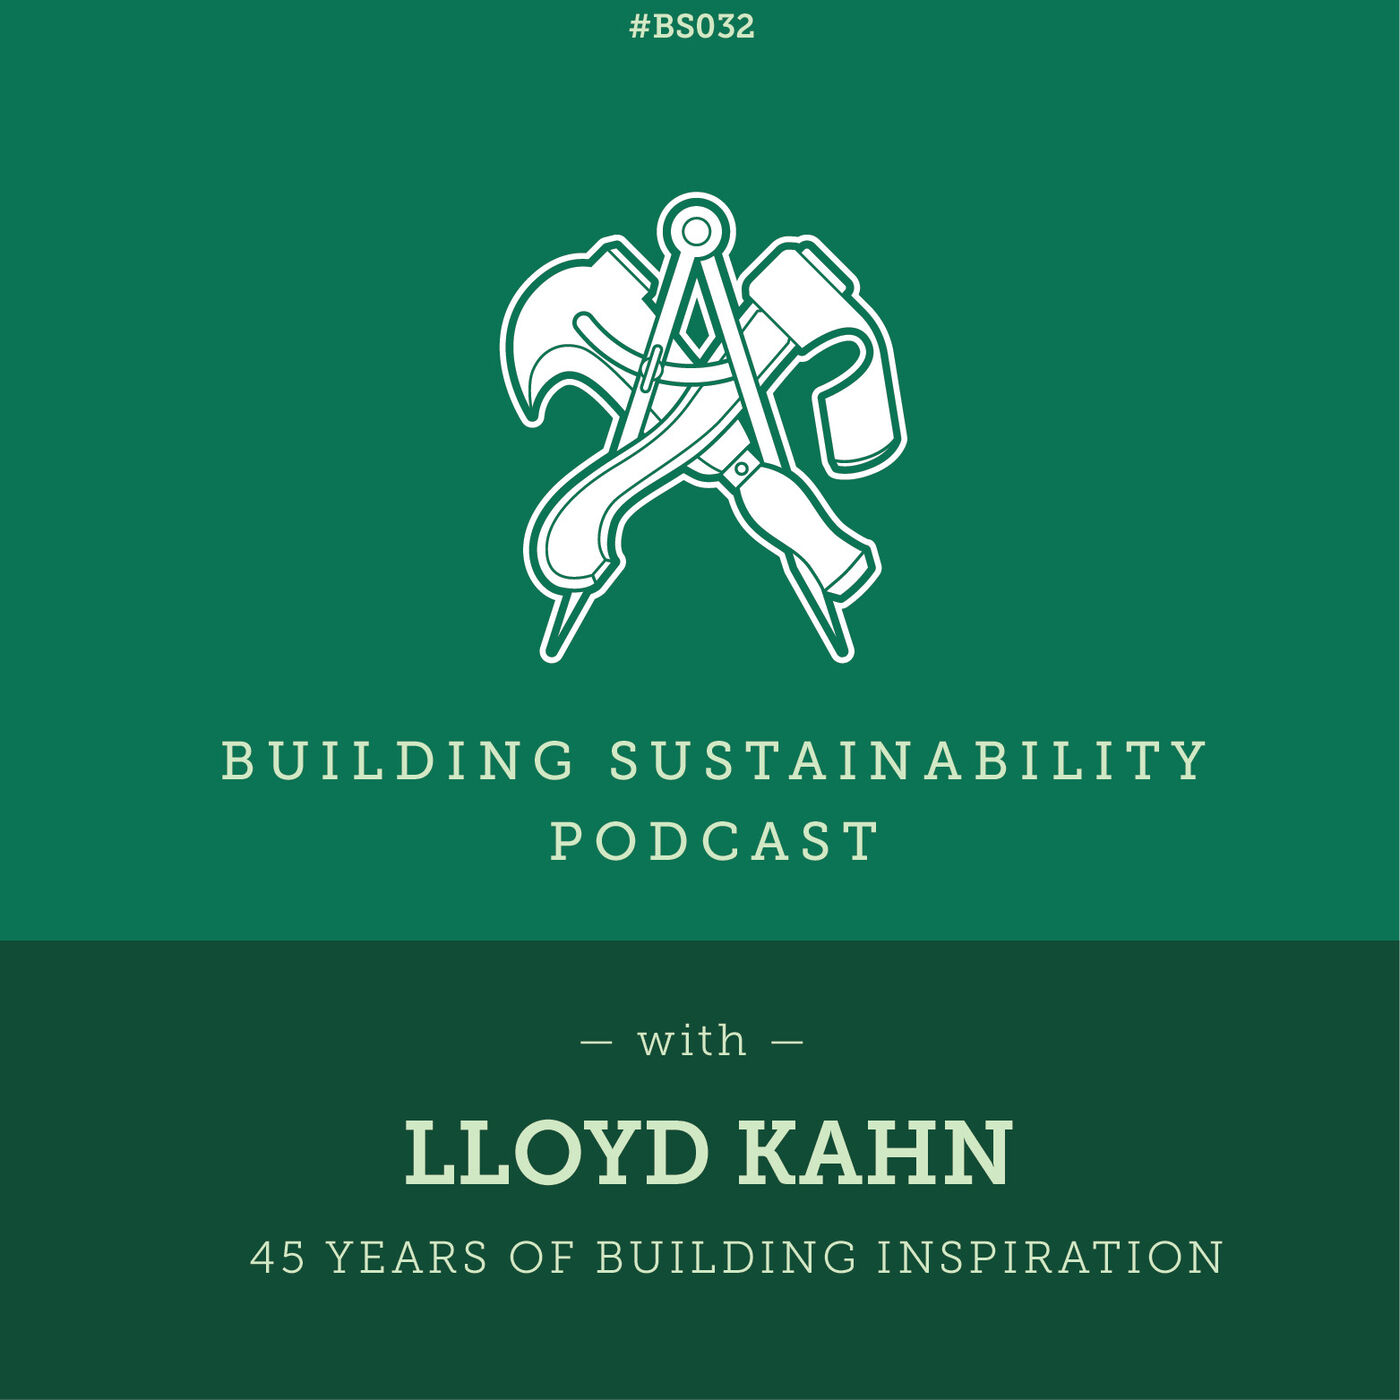 45 years of Building Inspiration - Lloyd Kahn - BS032